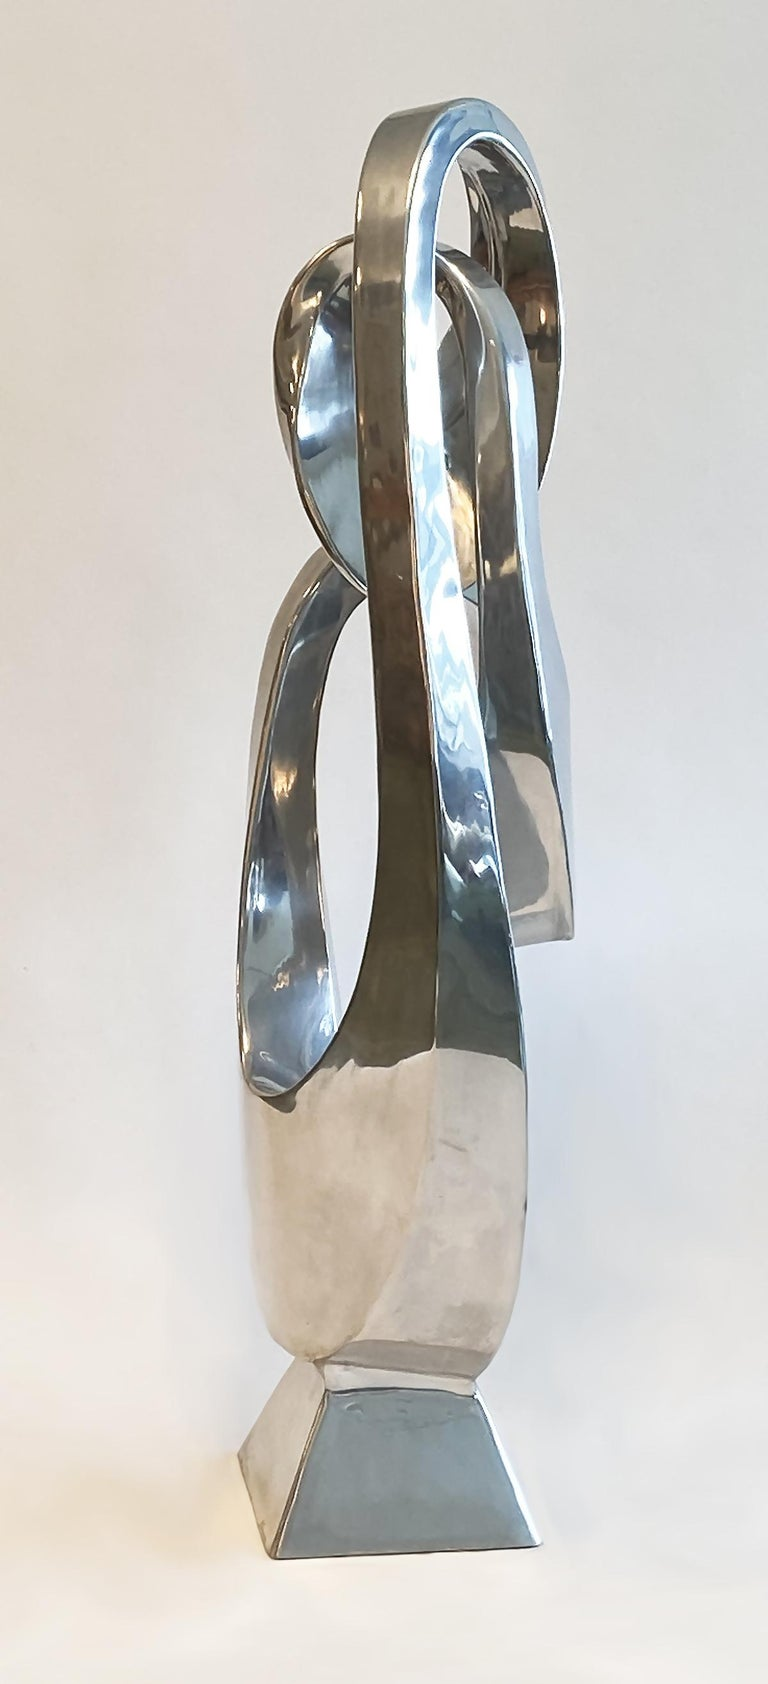 American Large Modern Abstract Aluminum Sculpture by Bill Keating, 1970s